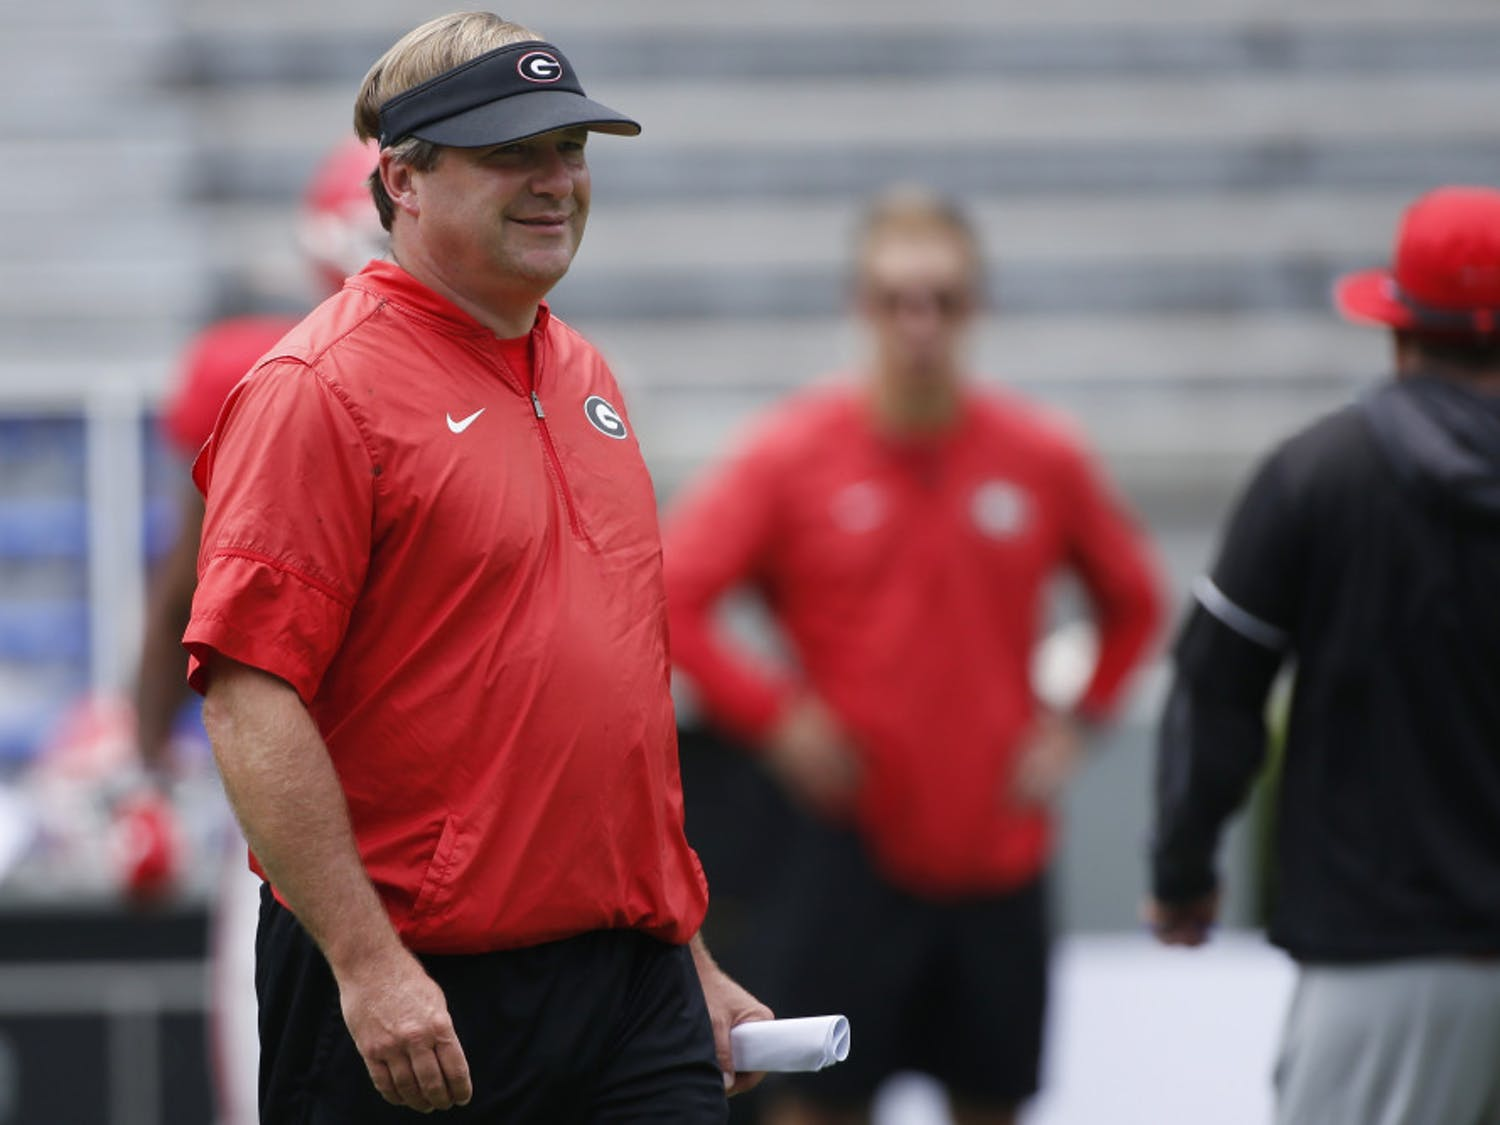 Georgia coach Kirby Smart looks on during an NCAA college football practice at Sanford Stadium in Athens, Ga., Saturday, Aug. 10, 2019.